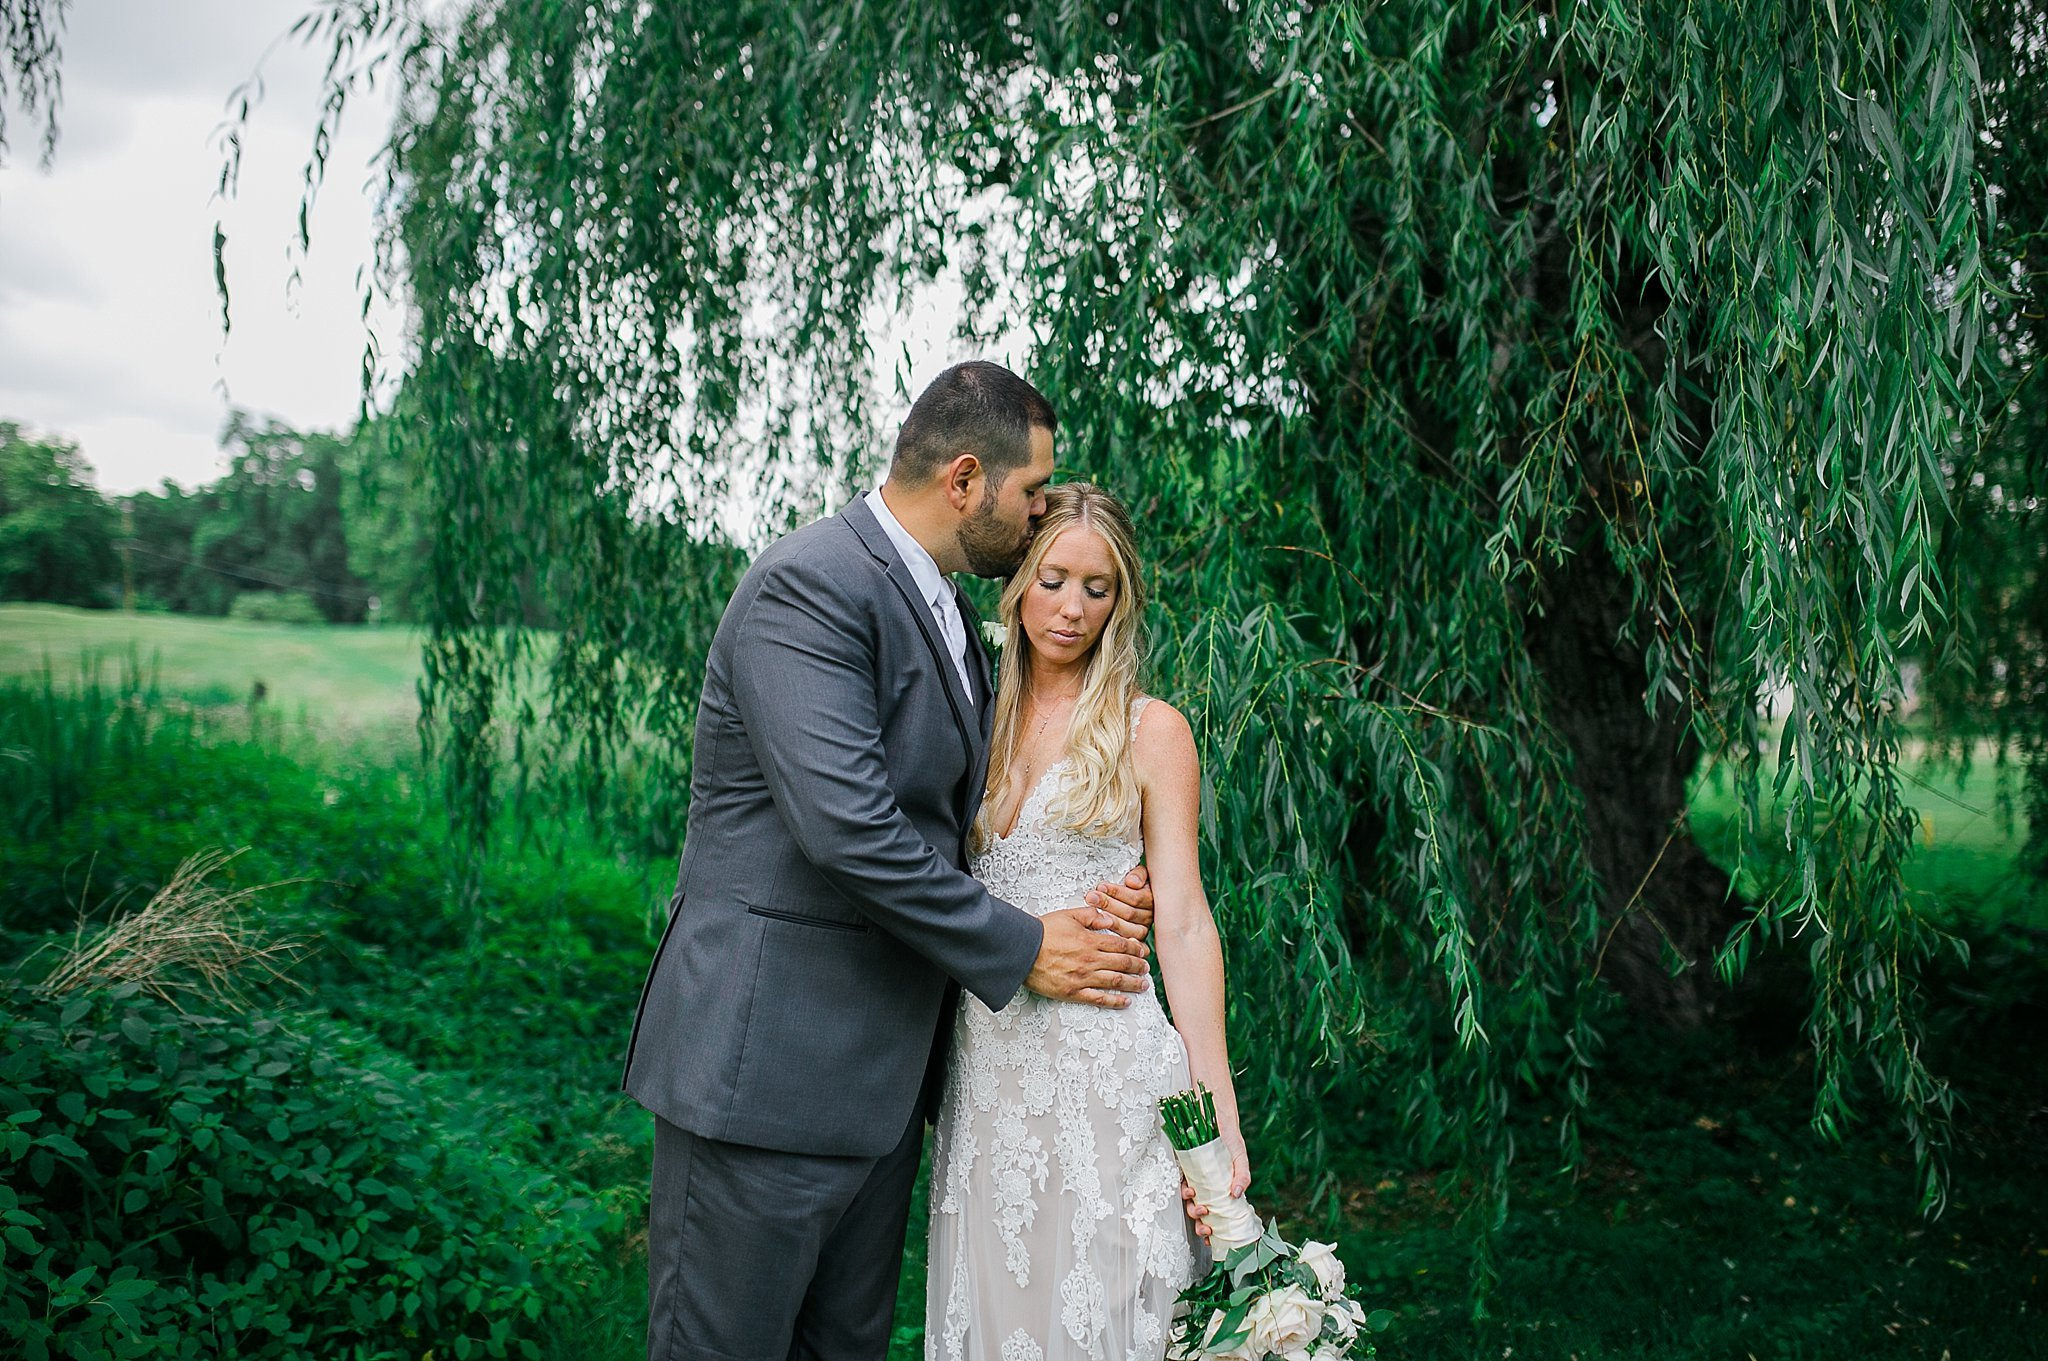 West Hills Country Club Wedding July Wedding Hudson Valley Wedding Hudson Valley Wedding Photographer Sweet Alice Photography36.jpg